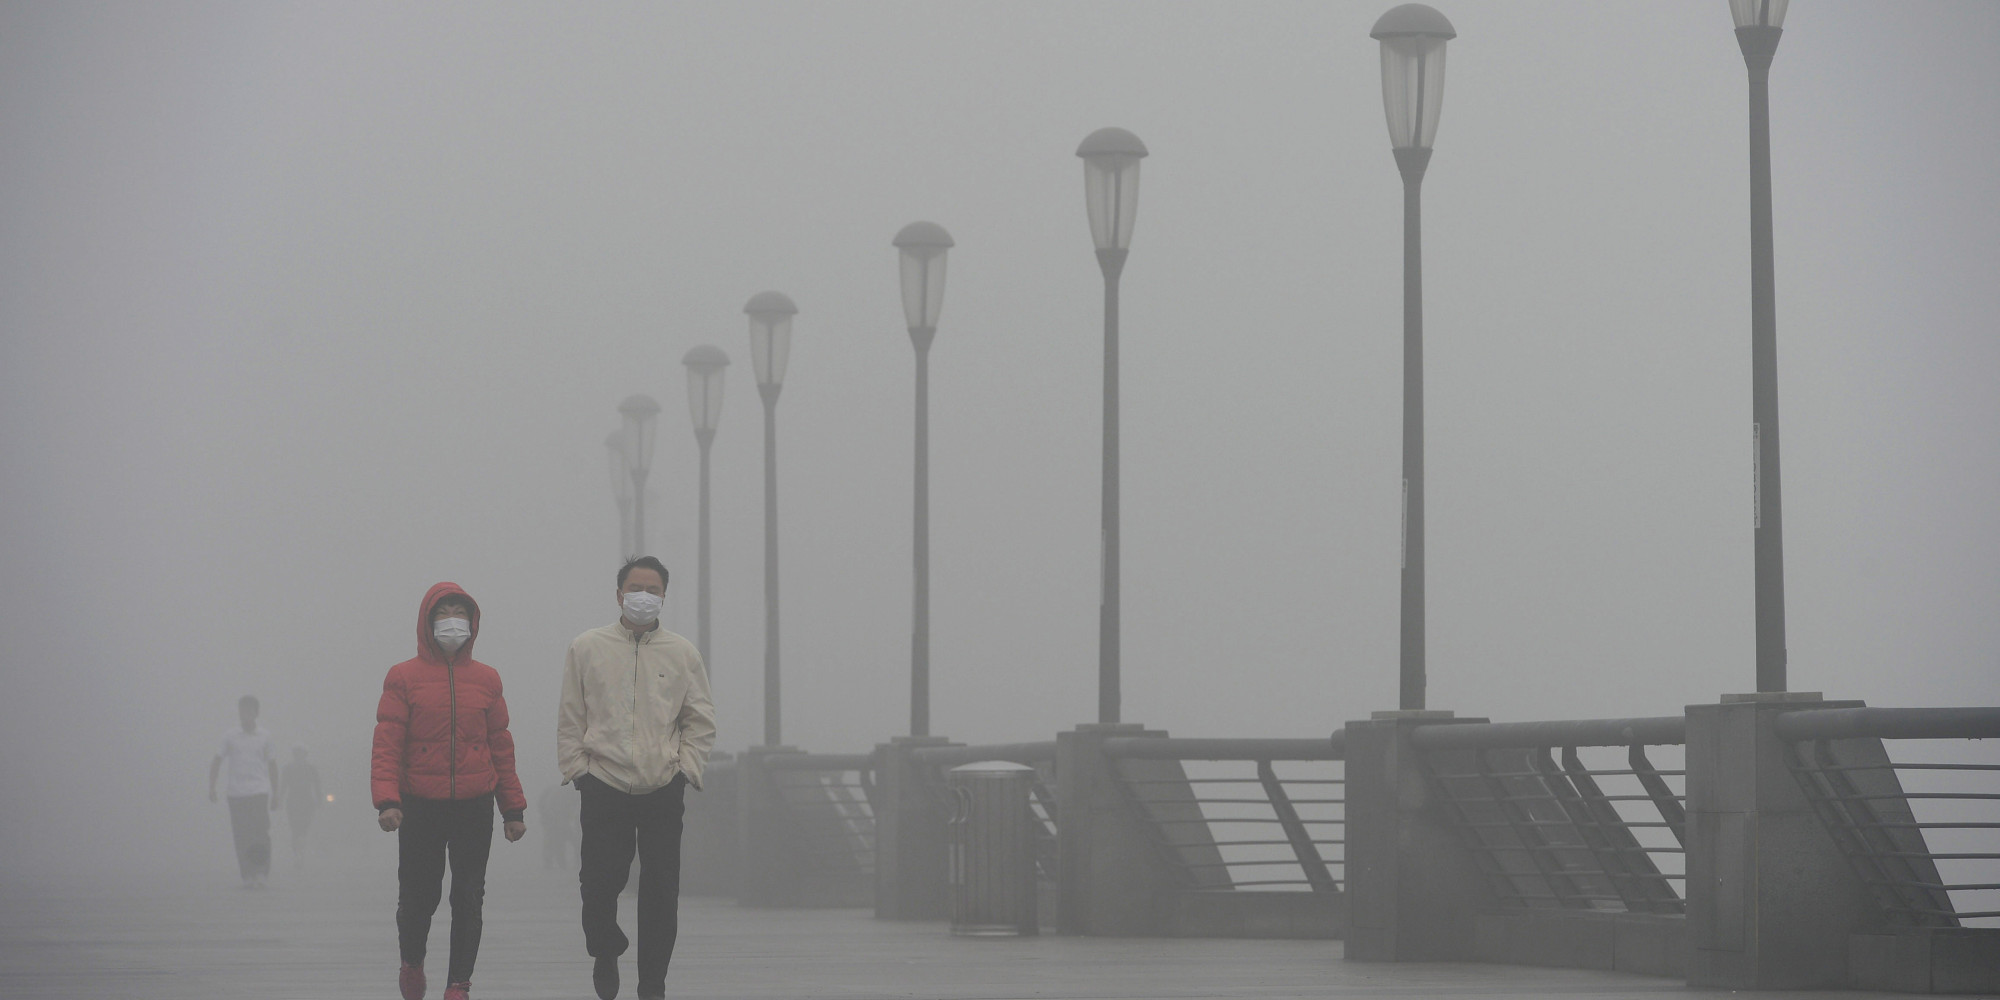 There Are Benefits To China's Smog, Chinese State Media ...